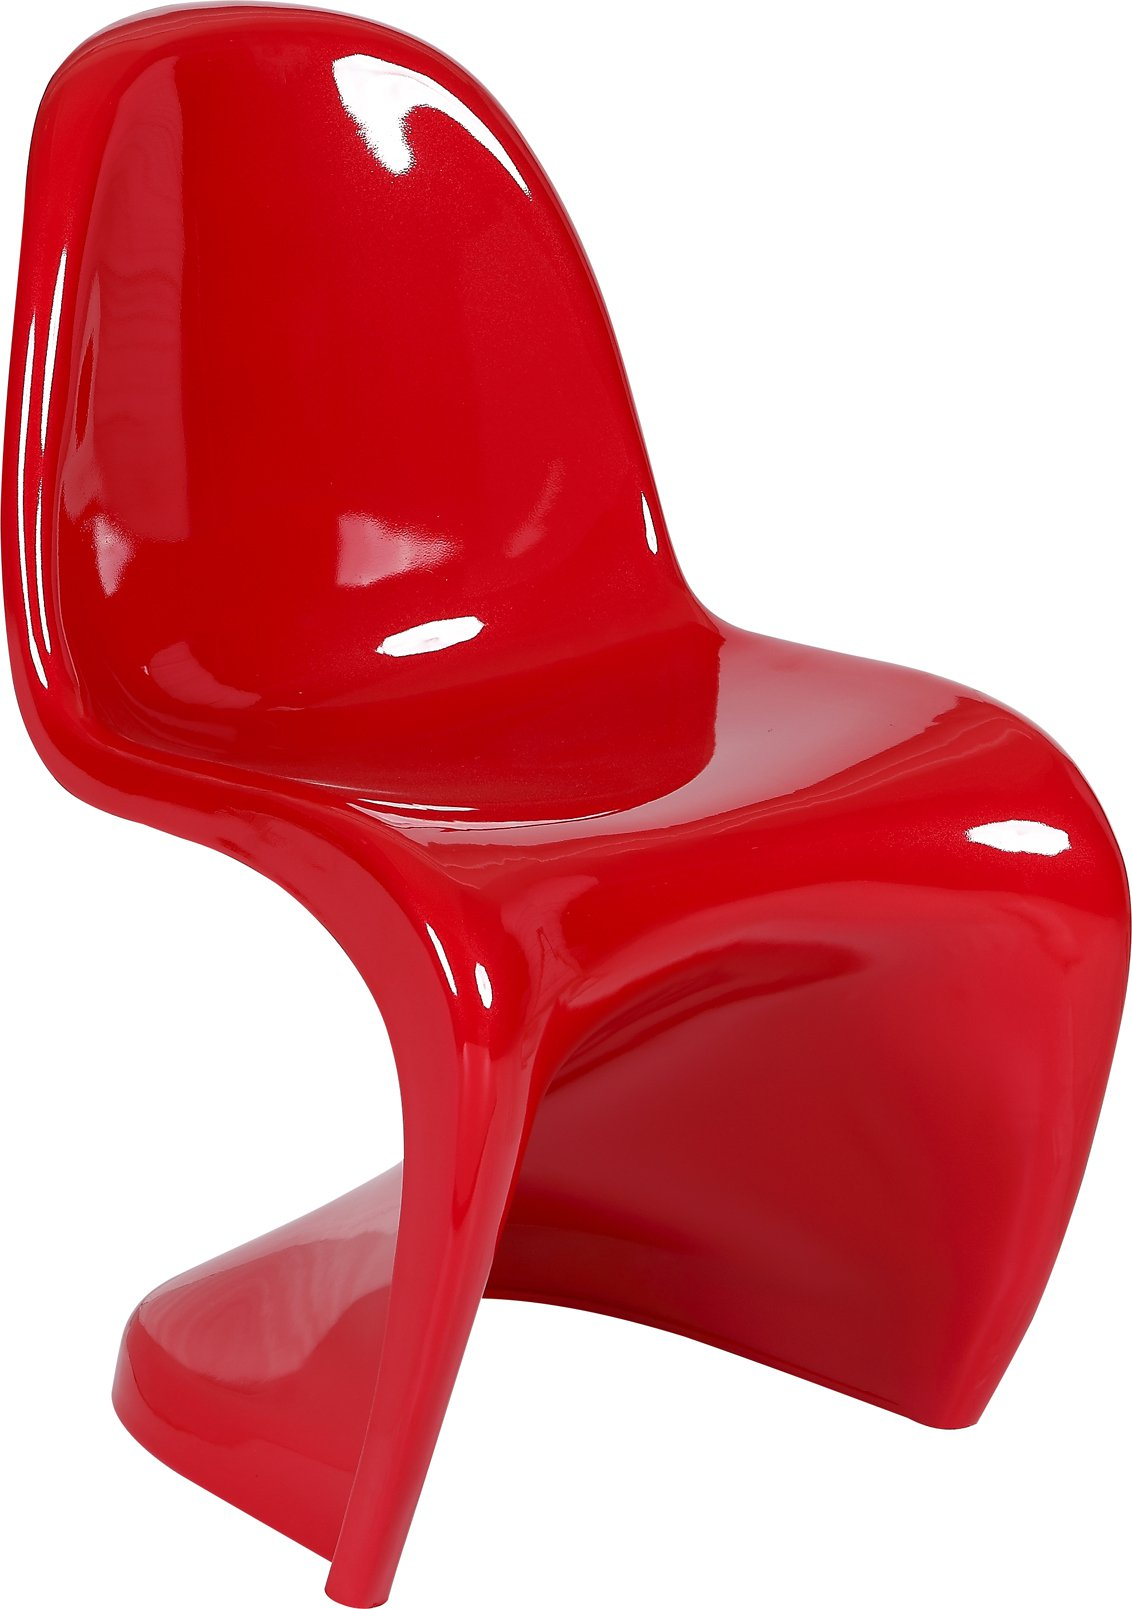 Chaise plastique design le monde de l a - Chaise plastique design ...